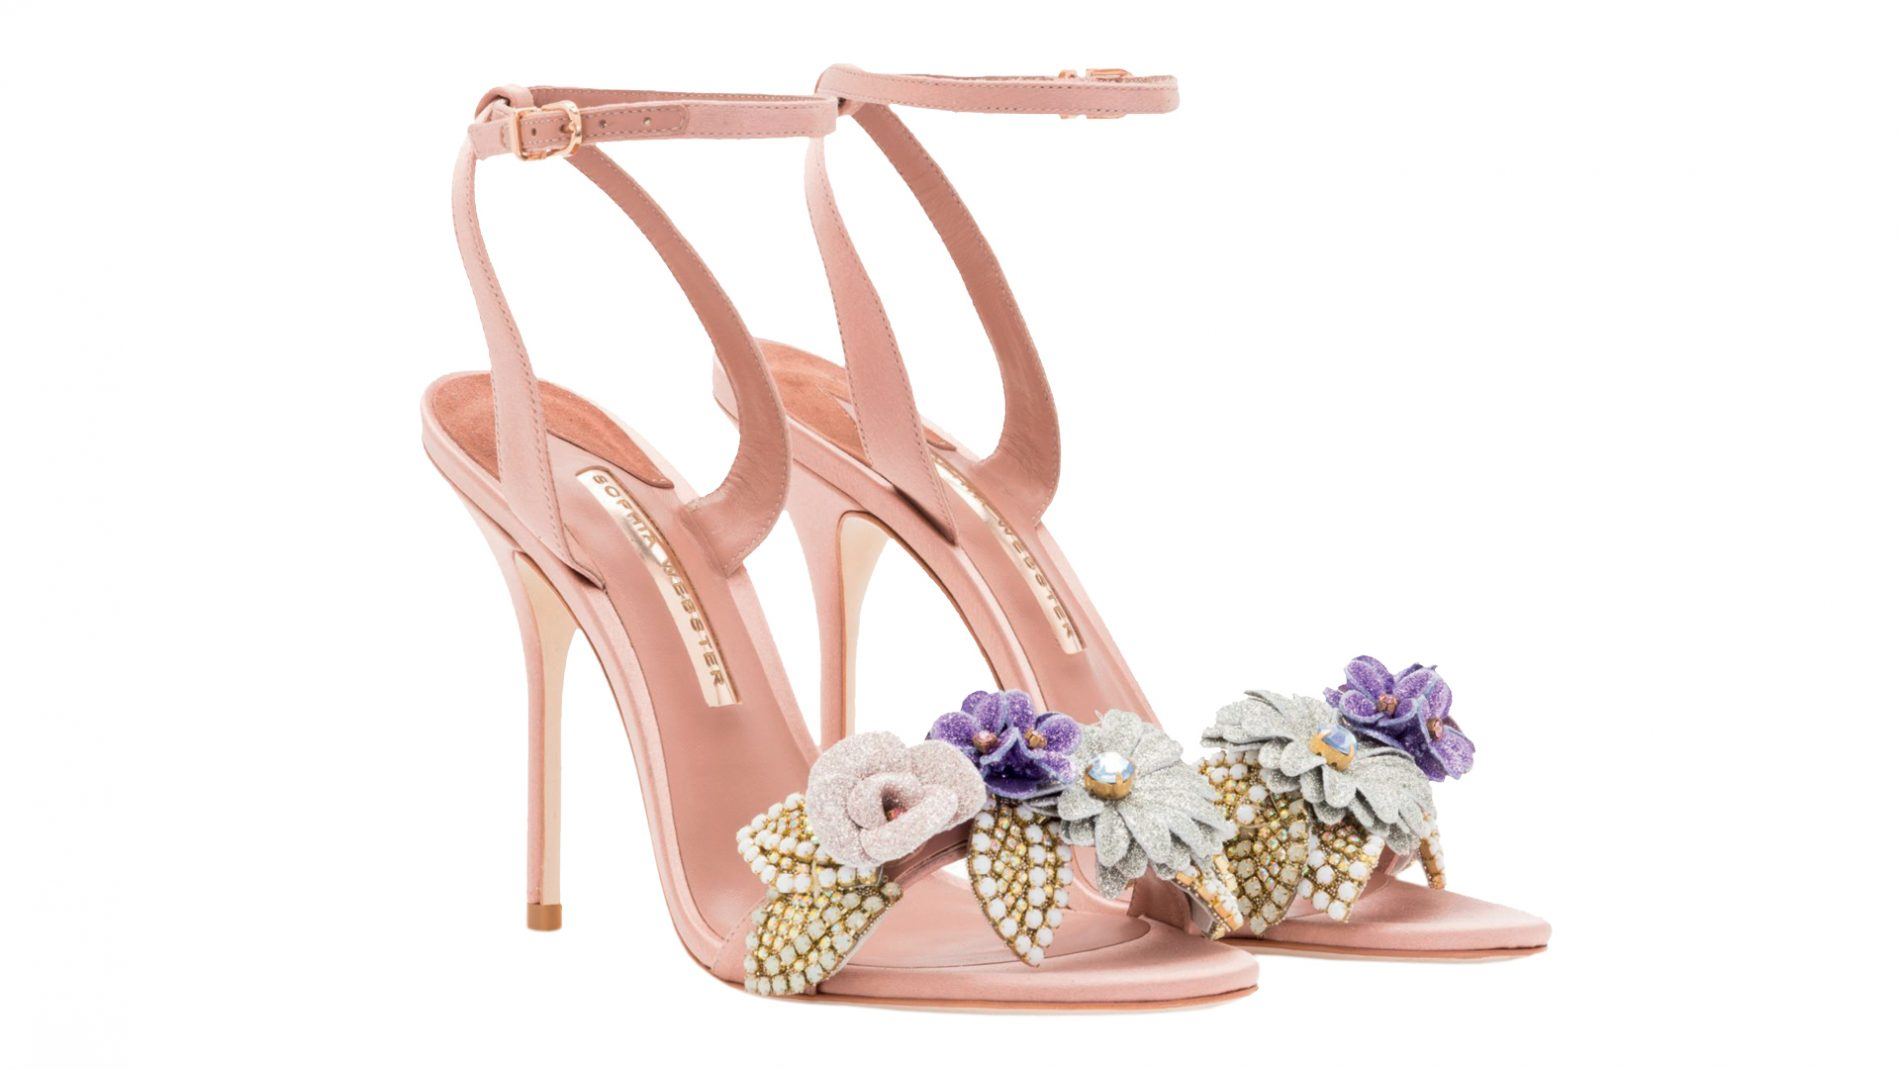 El Corte Inglés Designer Shoes Sophia Webster Embellished Sandals